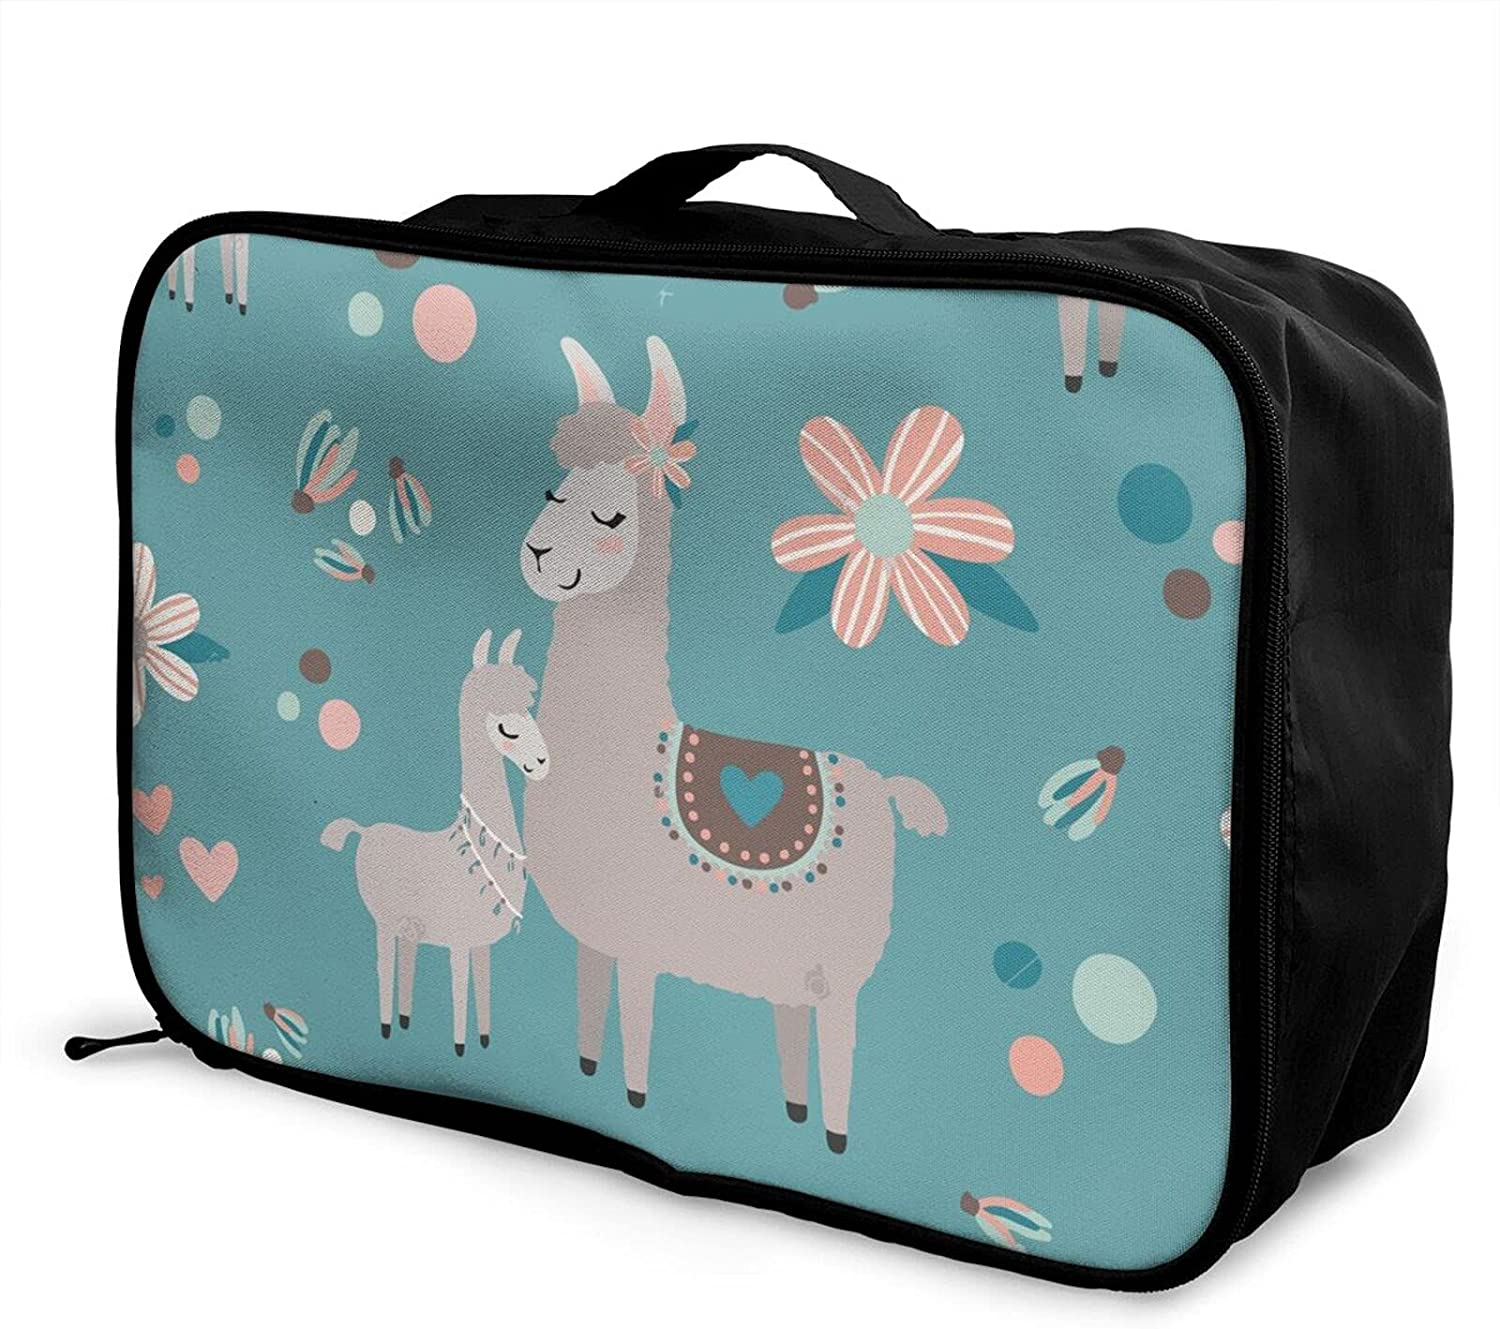 Foldable Travel Bag Max 78% OFF Tote Free Shipping New Blue Alpaca Floral Llama Carry-On